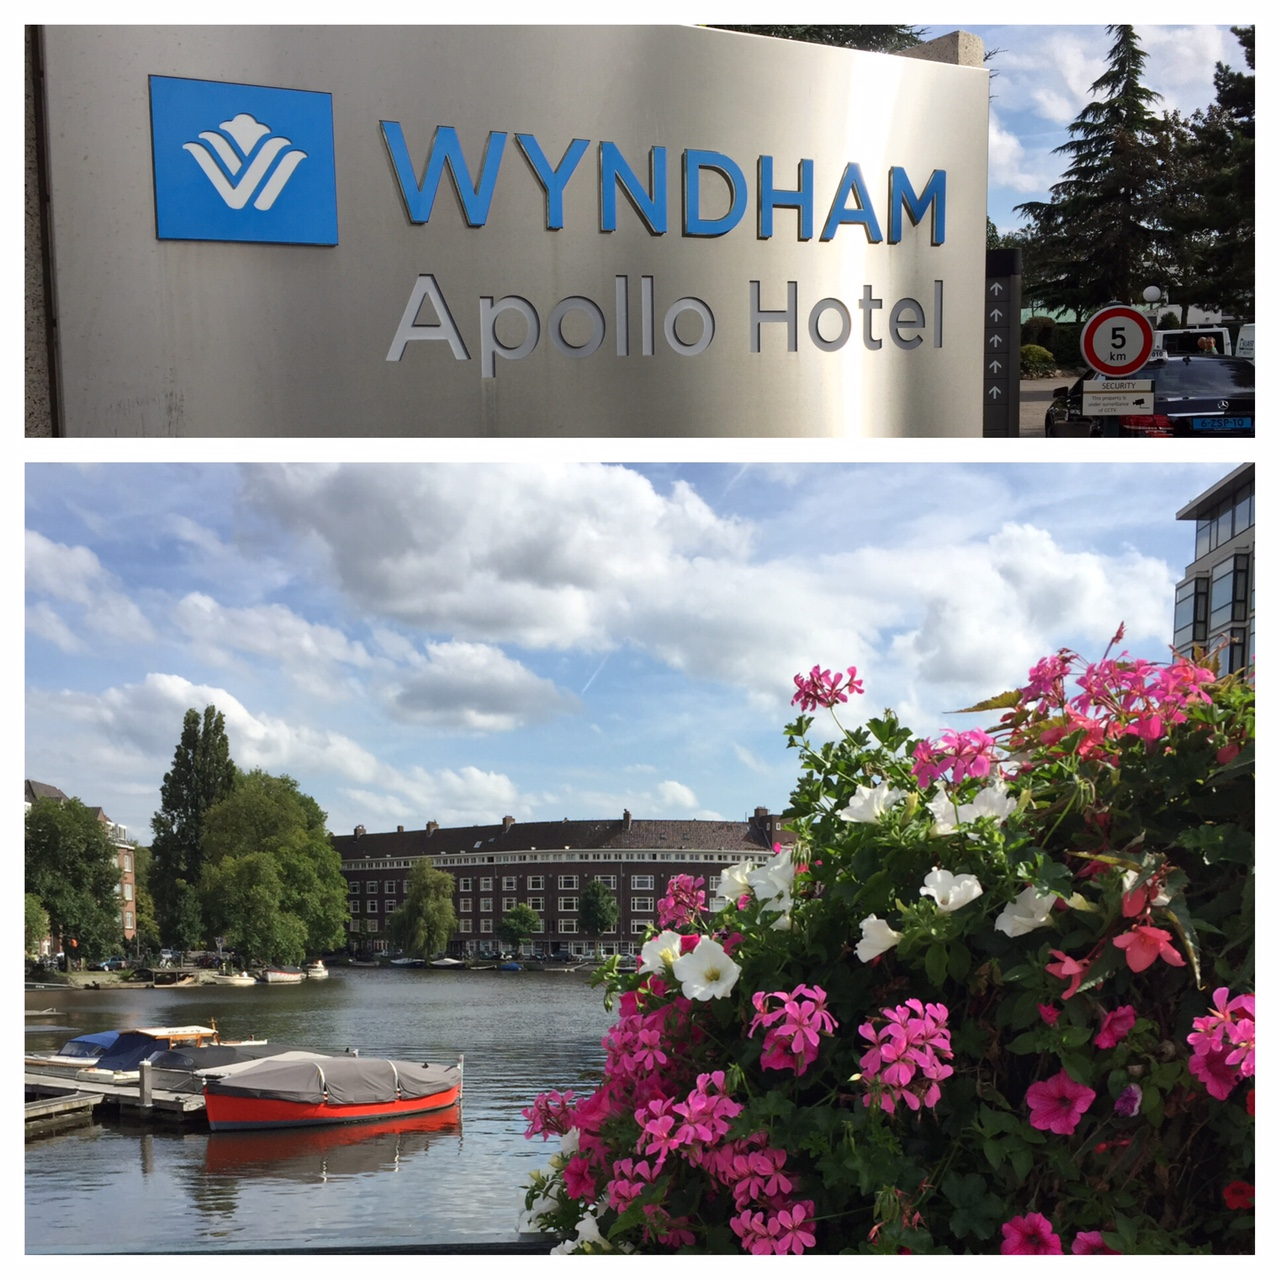 viking river wyndham flowers a boomers life after 50a boomers life